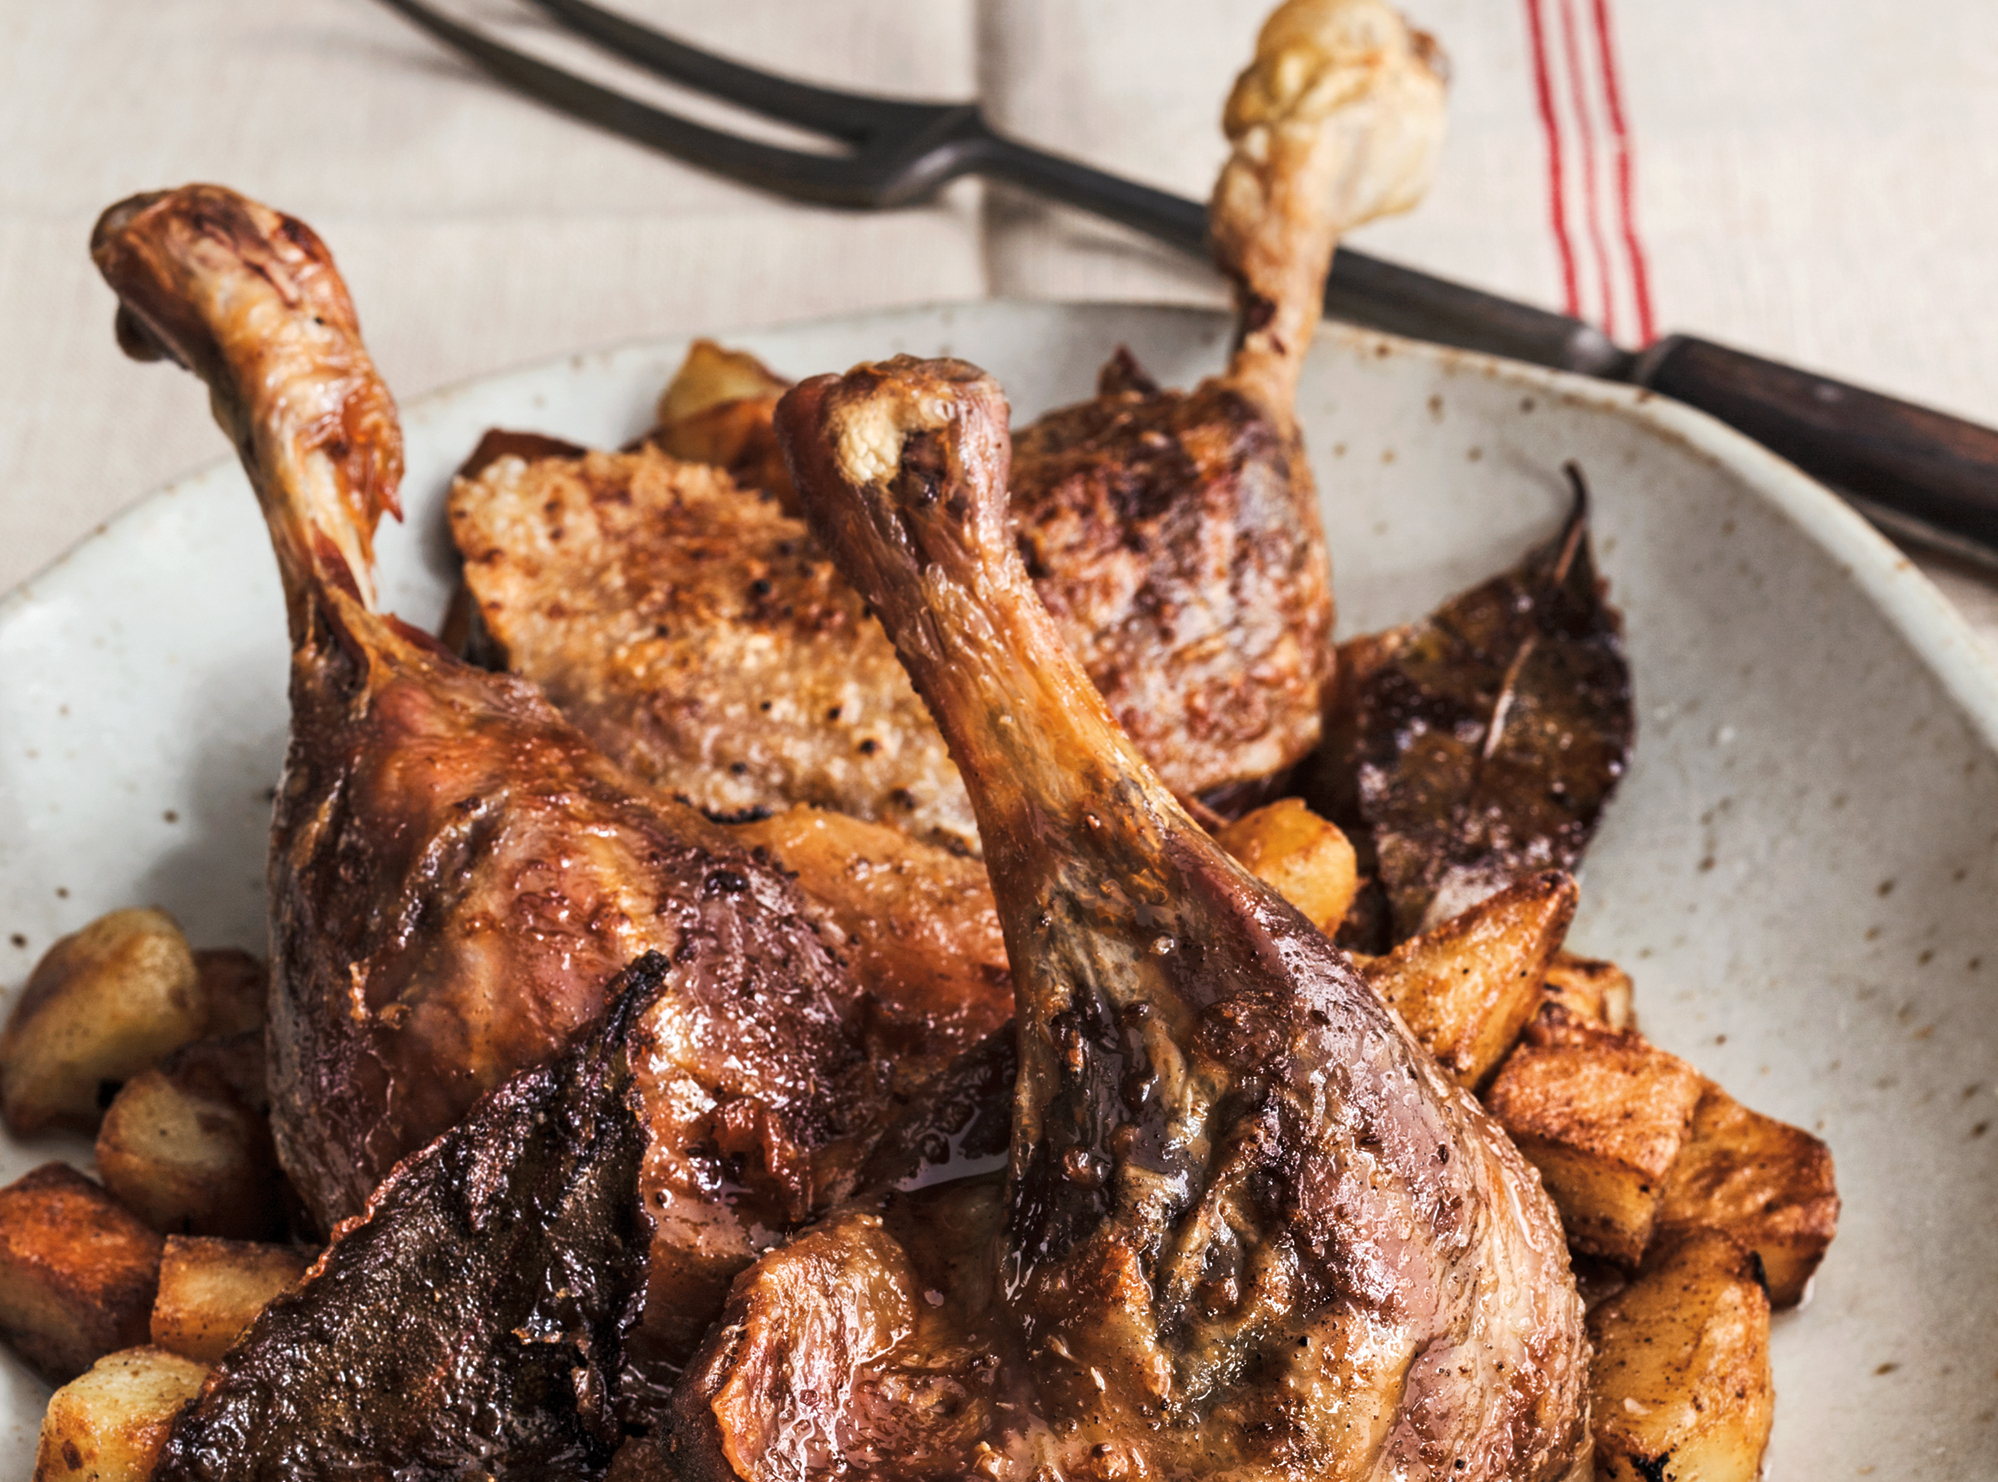 Traditional recipes for duck confit, or confit de canard, can require dozens of steps to prepare. David Lebovitz's fake take cuts the steps down to five.